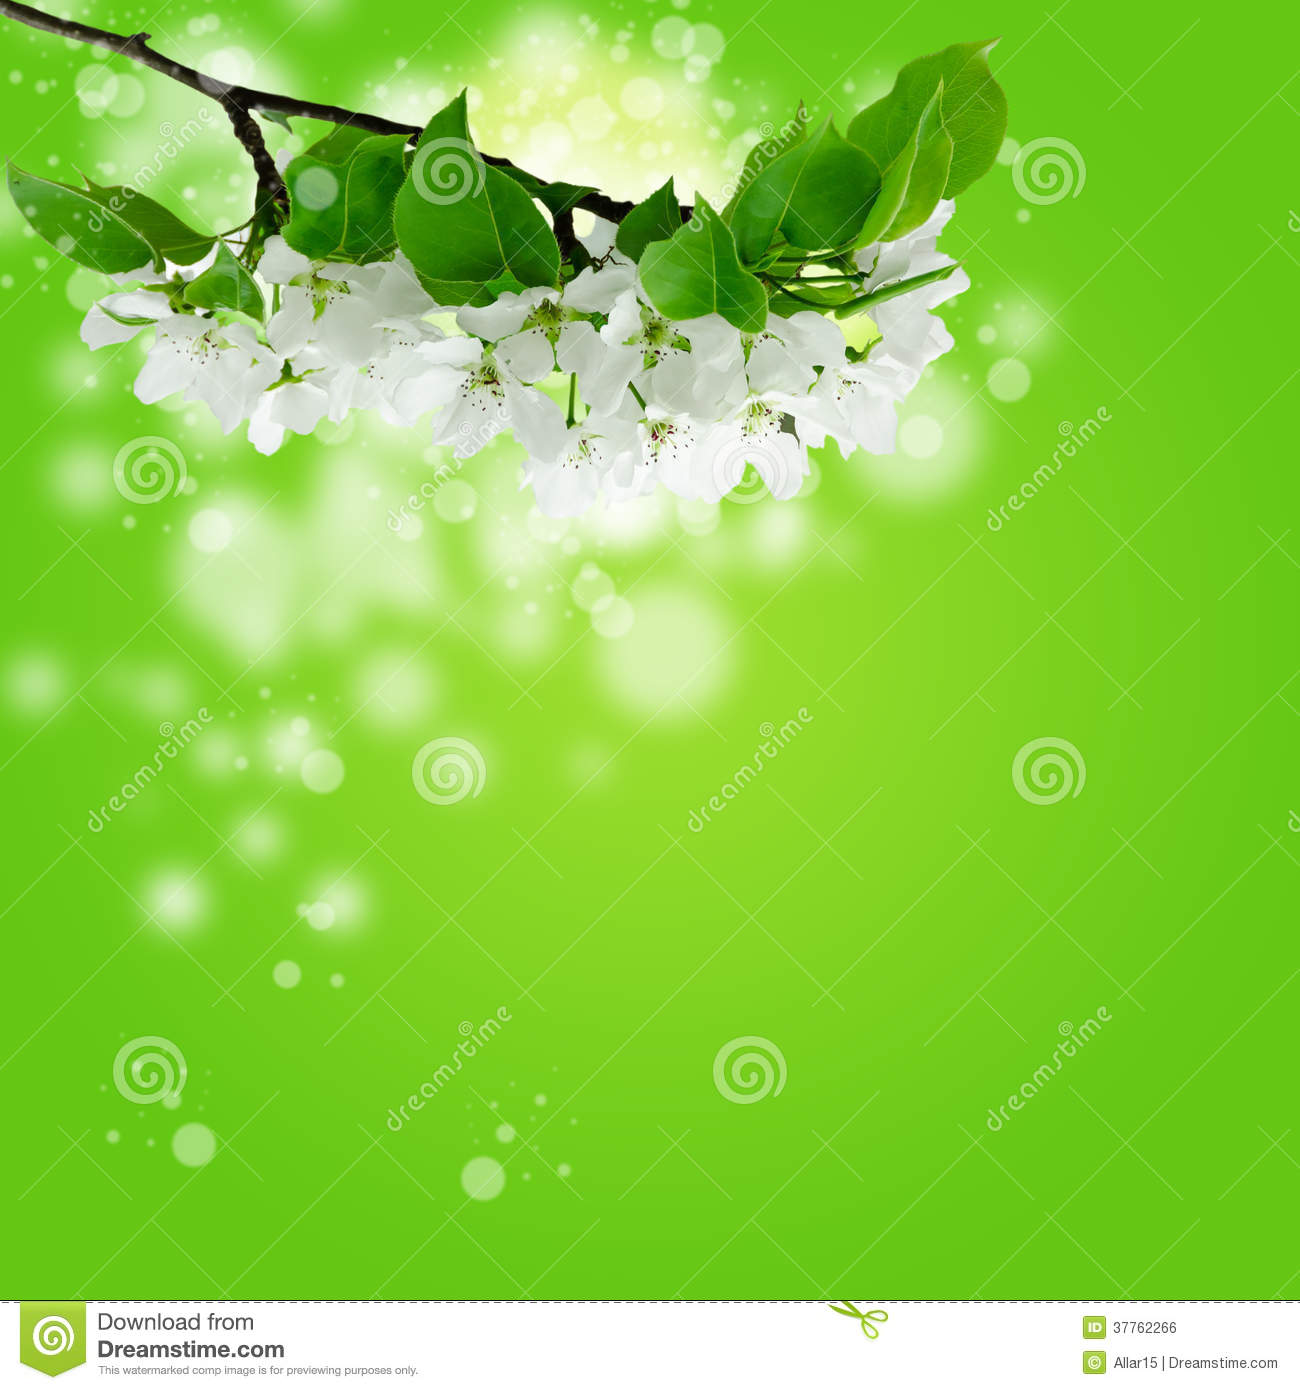 green spring background - photo #25